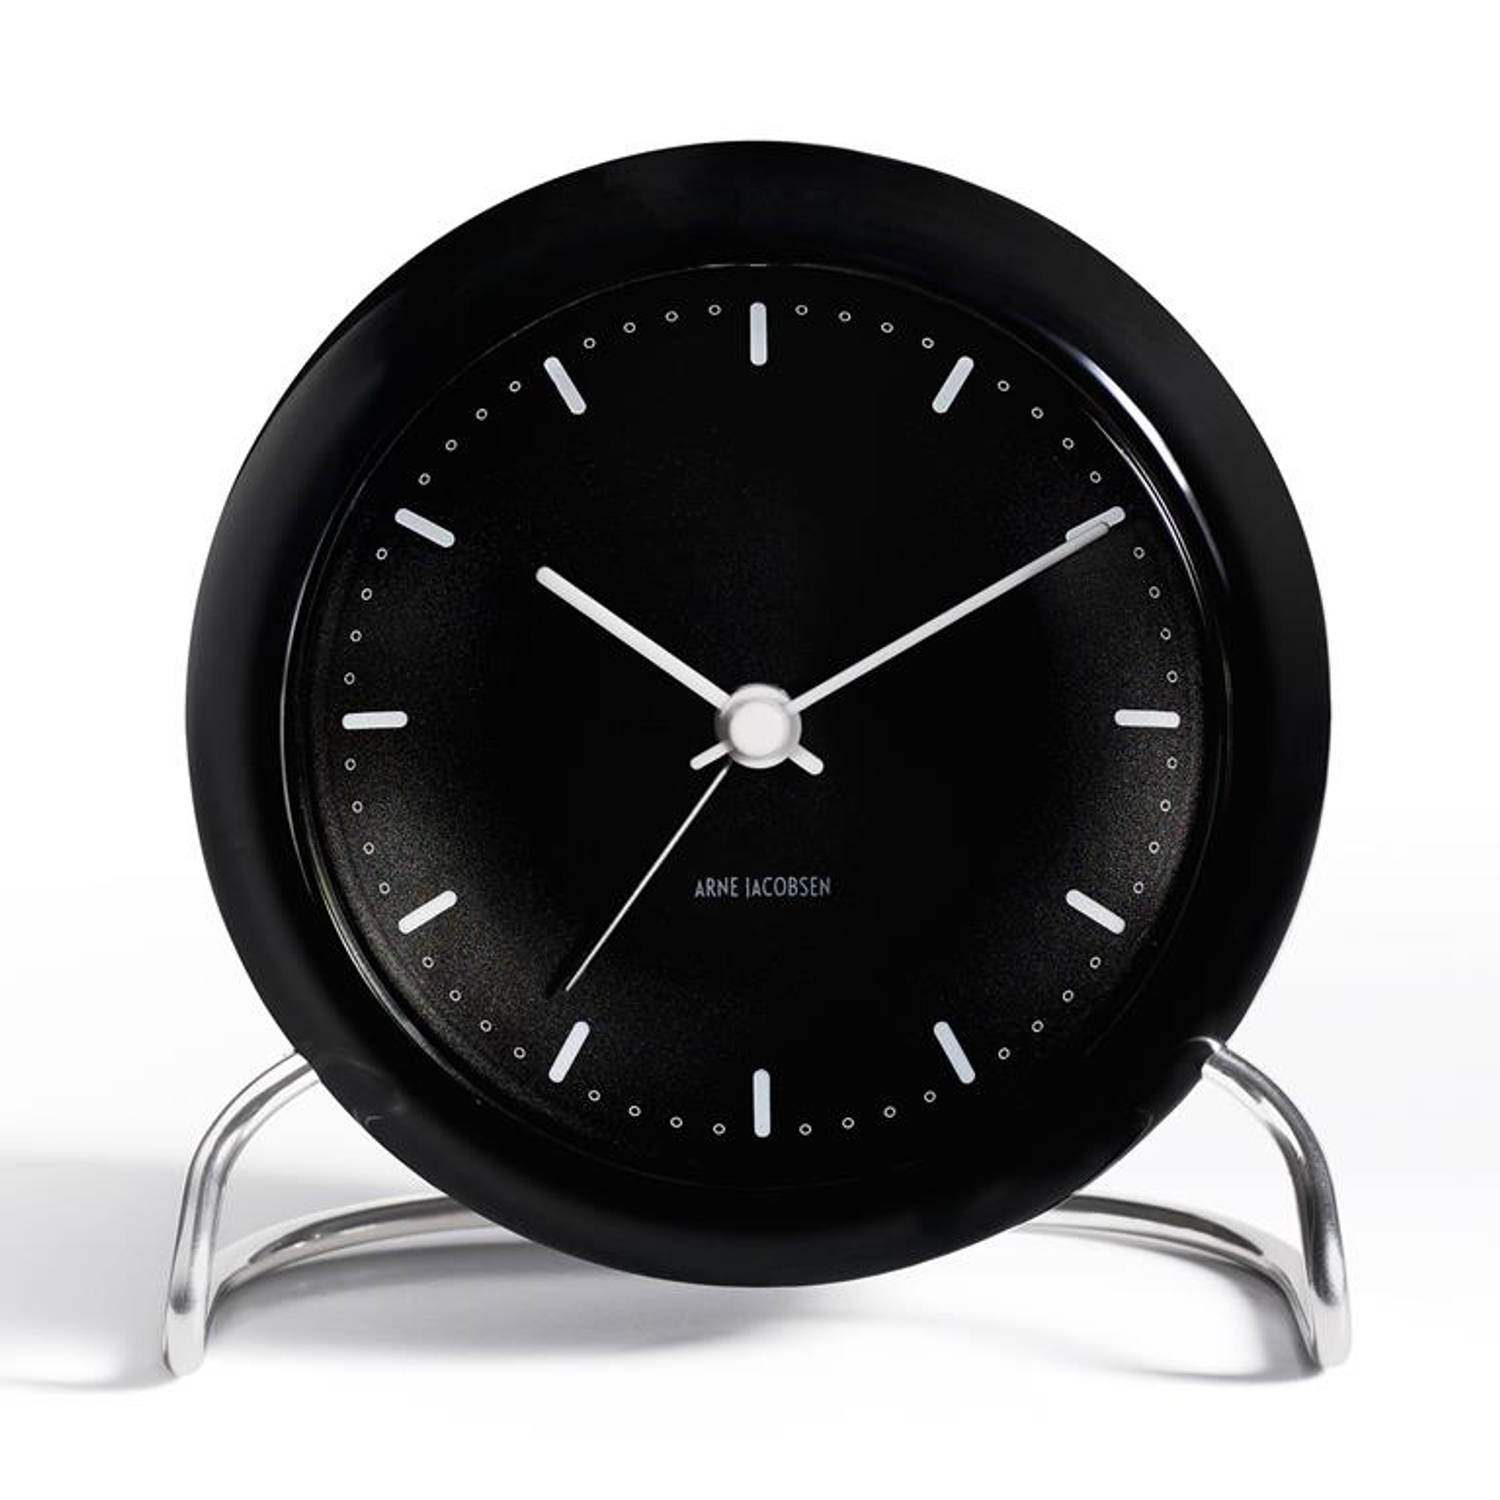 Afbeelding van Arne Jacobsen - Arne Jacobsen City Hall table clock 11cm